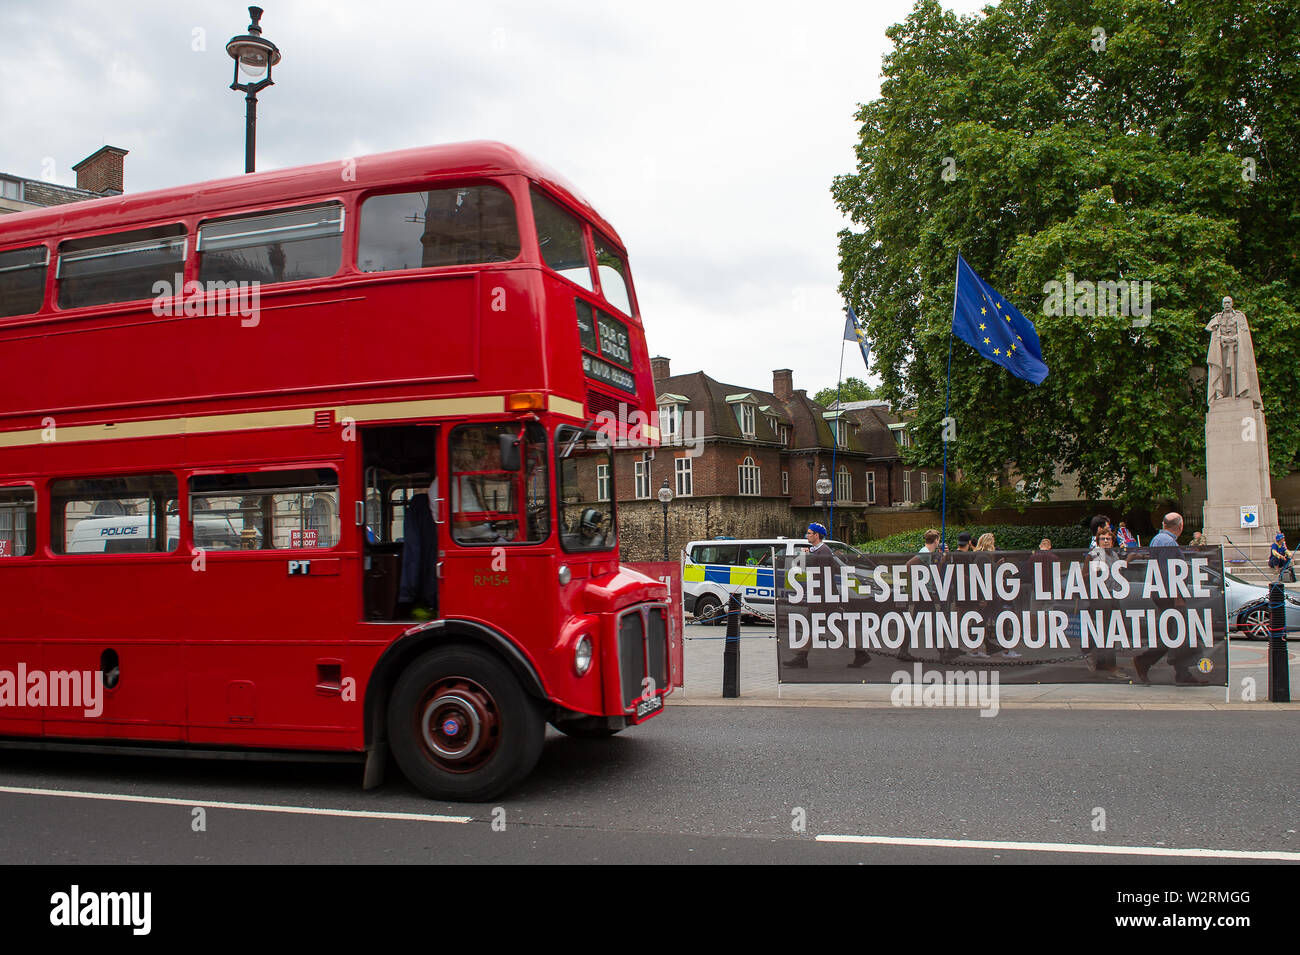 Westminster, London. 9th July, 2019. A vintage London red bus passes the Brexit Remainers campaign sign opposite the House of Commons. Credit: Maureen McLean/Alamy - Stock Image